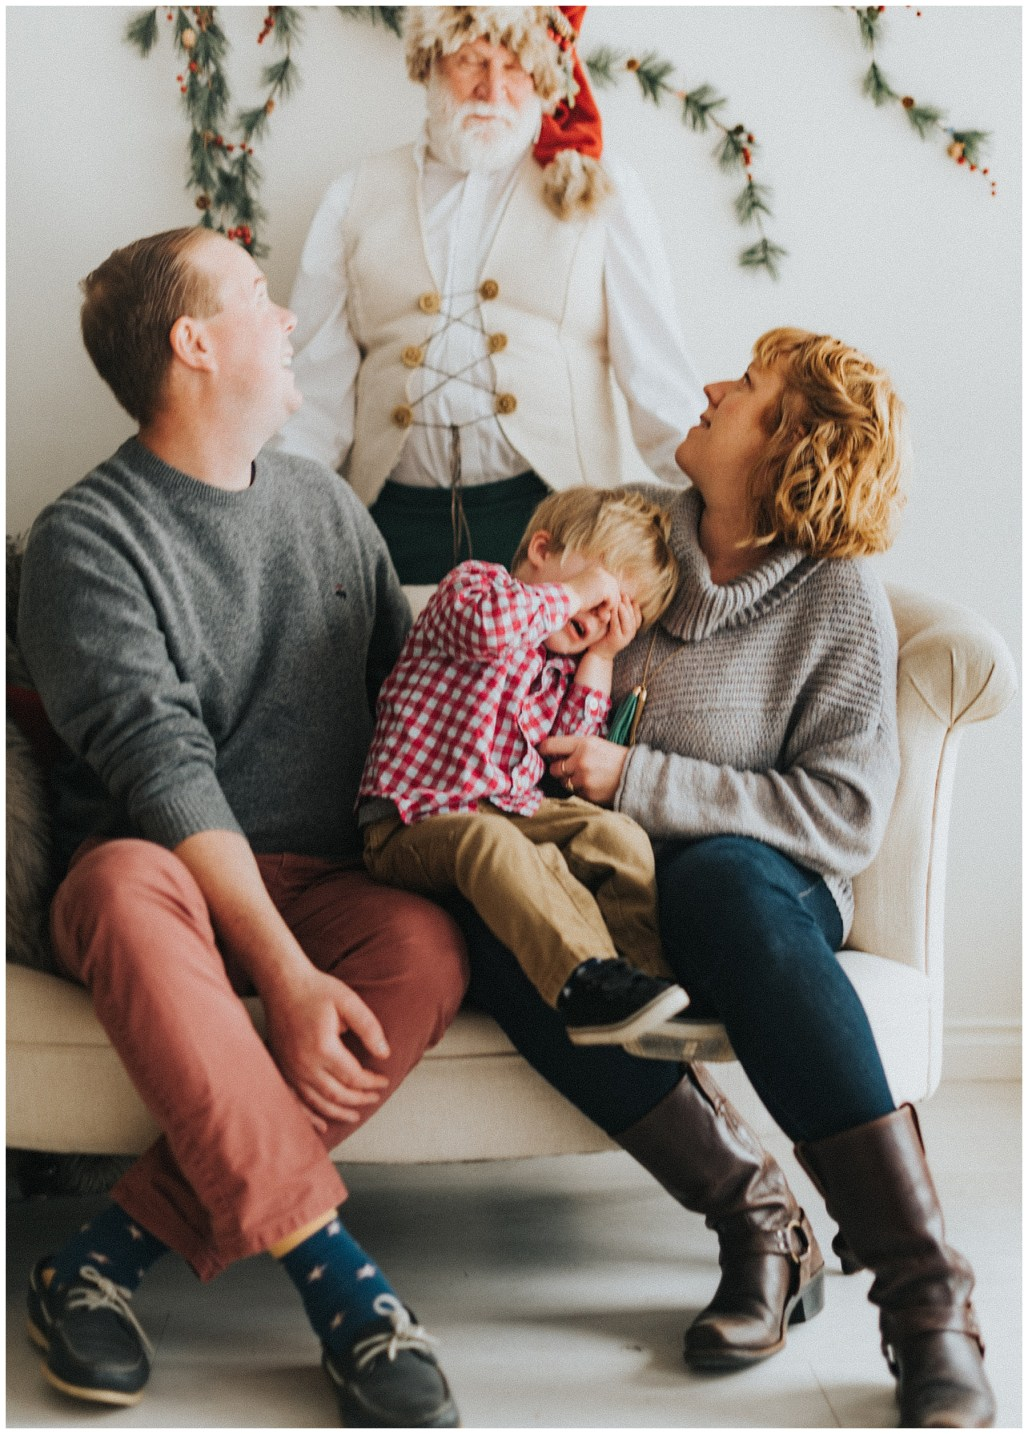 Best Spots to Meet Santa Clause Near Seattle, Seattle Photographer, Holiday Family Sessions, PNW Santa, Lauren Ryan Photography, Seattle Santa Clause